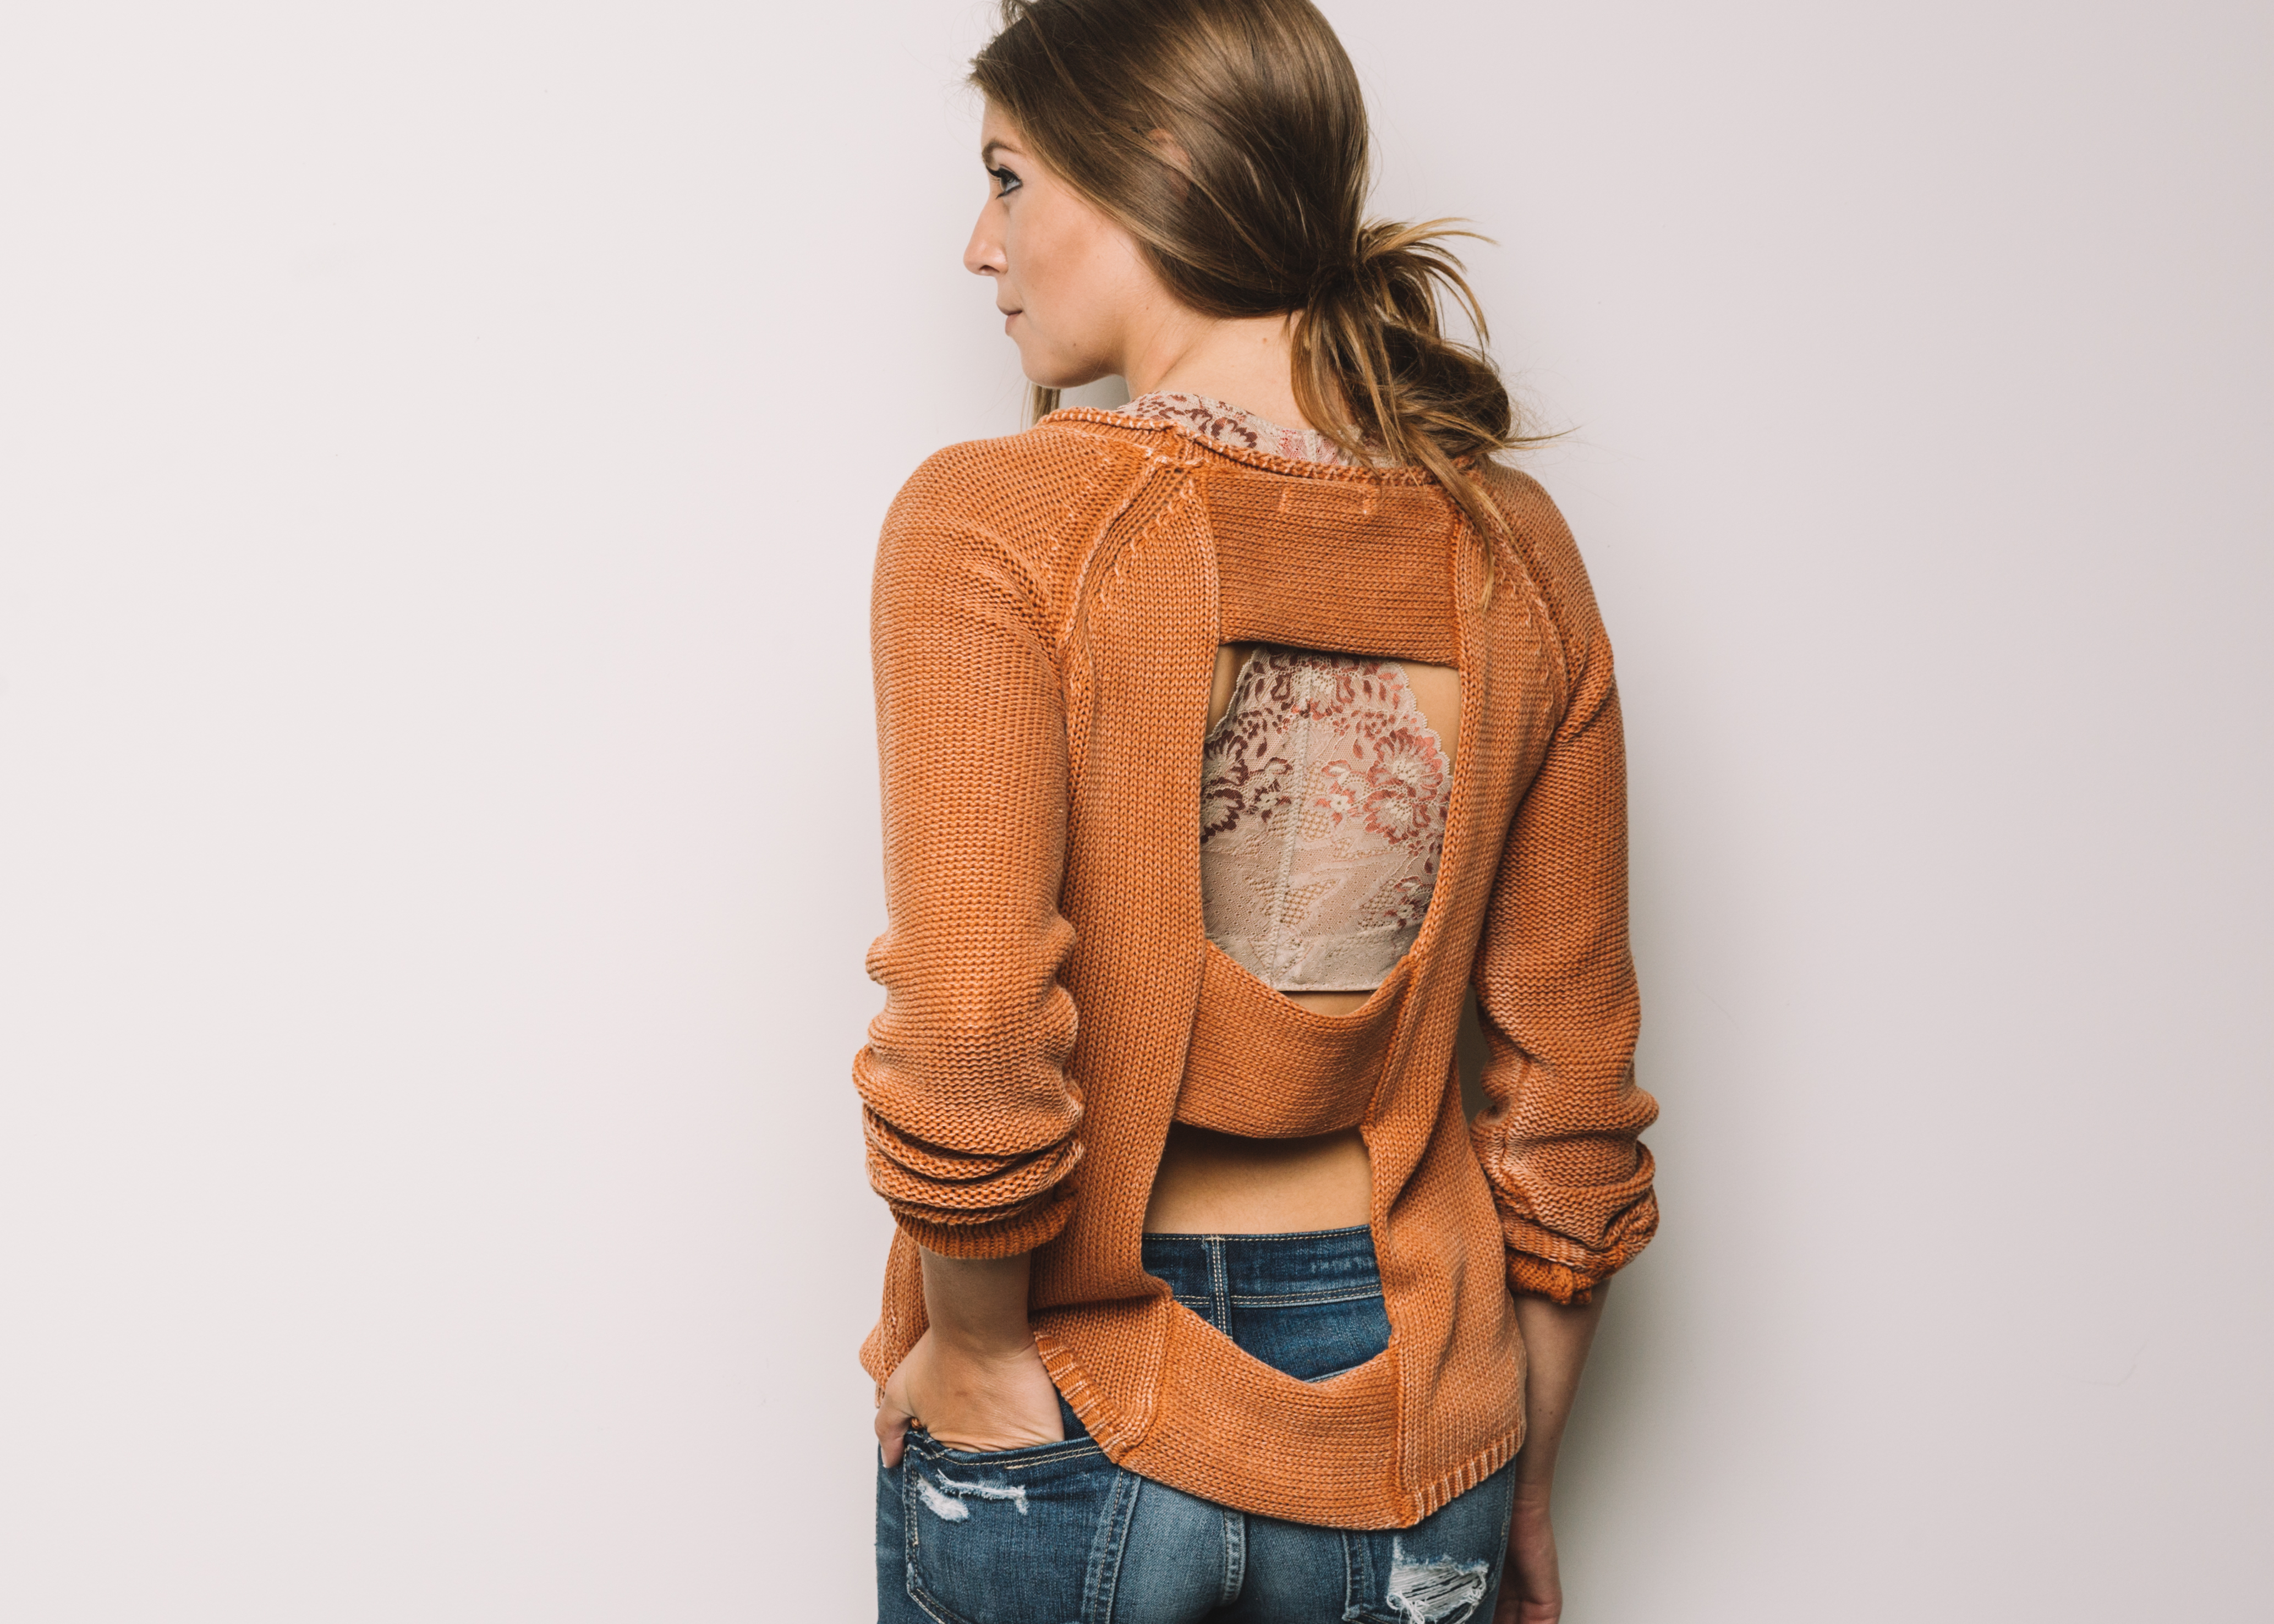 #BareYourBralette this October to raise awareness for Breast Cancer Prevention and Early Detection   Outfit: washed orange Gilded Intent knit sweater, paired with a Daytrip lace racer back bralette, and Gilded Intent distressed ankle skinny denim.